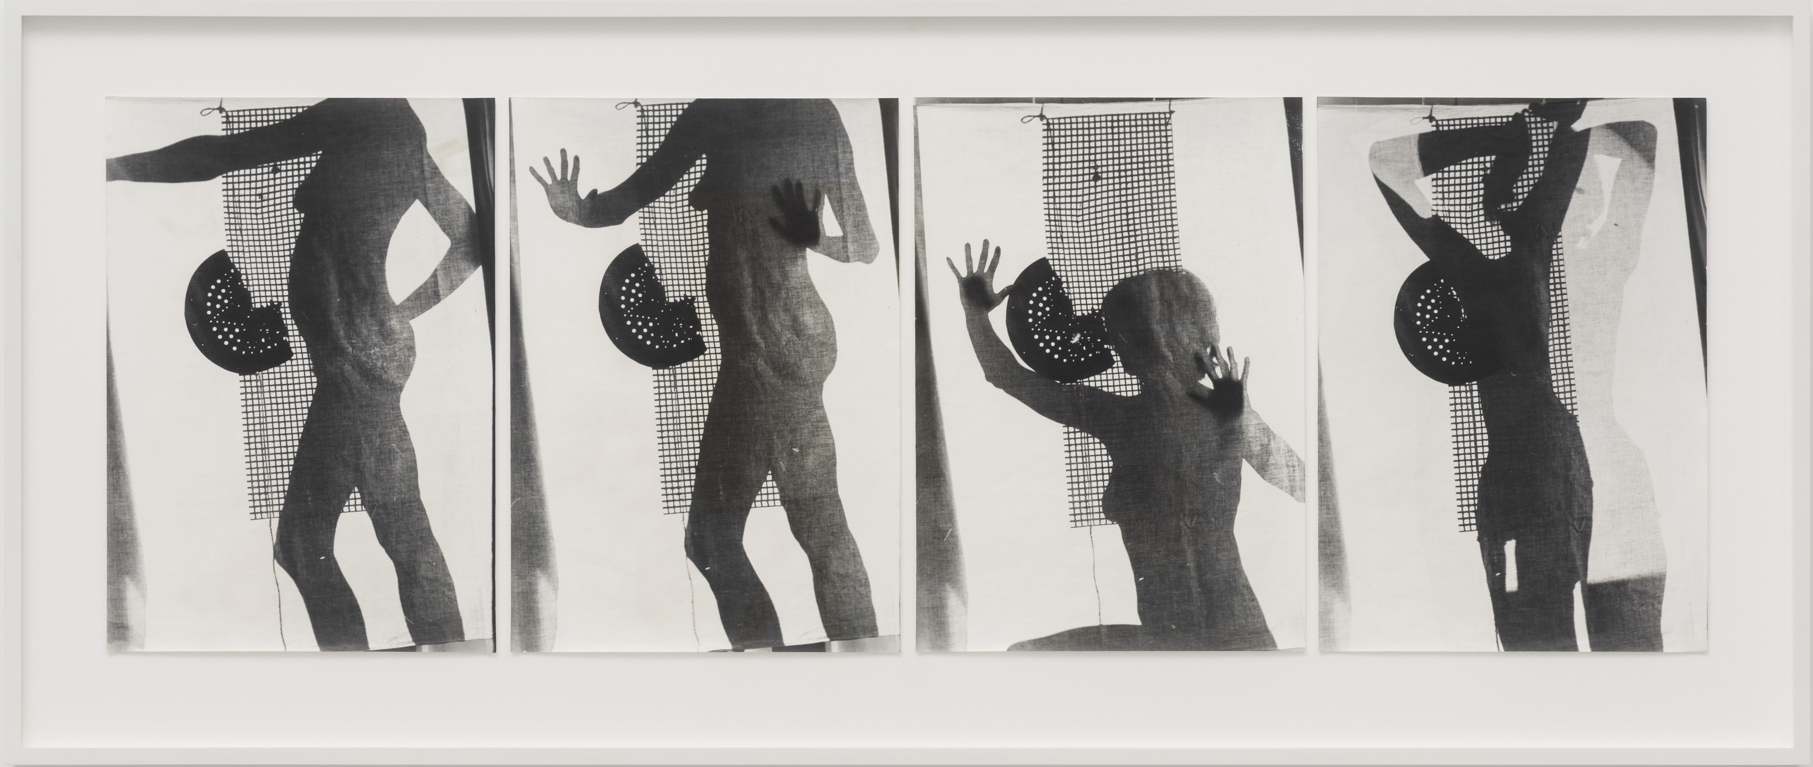 Ferenc Ficzek, Untitled (Shadow projection, figure, grid) No. 1-4, 1975, series of 4 silver gelatin prints on Dokubrom paper, 57,5 x 136 cm. Photo. Marcus Schneider